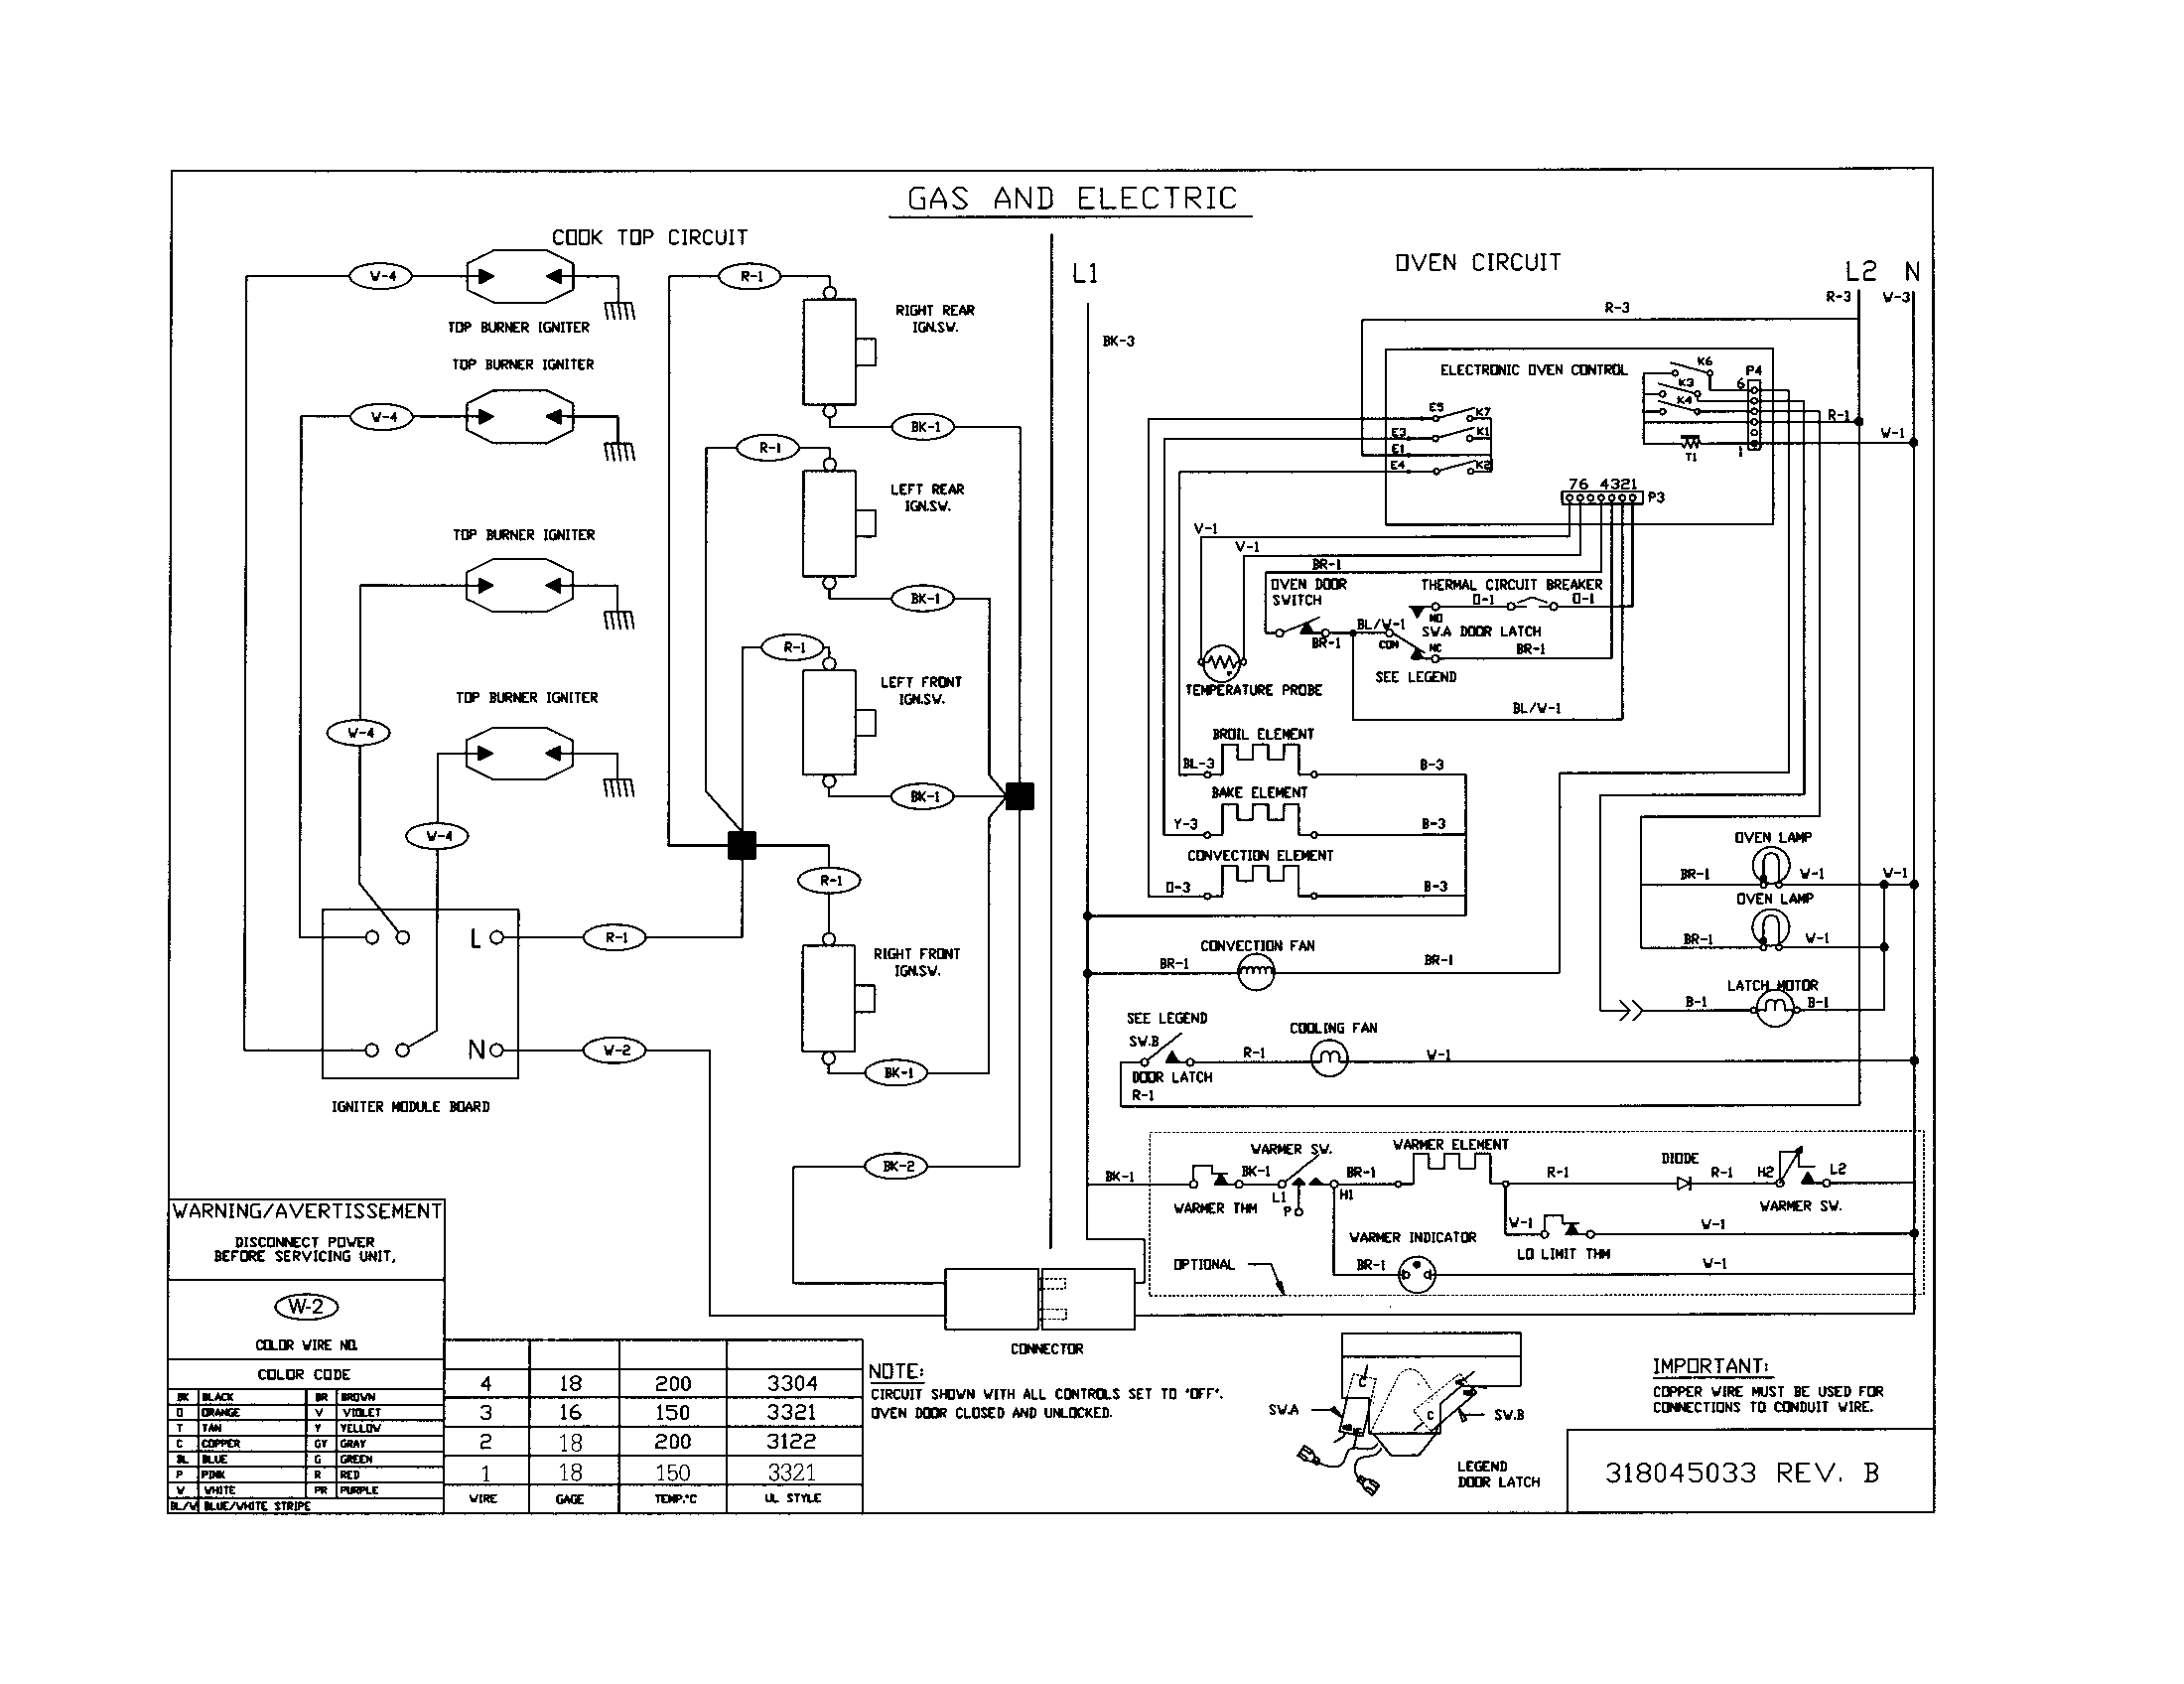 Kenmore Elite Wiring Diagram 28 Images Washer 3955735 Model 11023032100 79046812991 Dual Fuel Slide In Range Parts